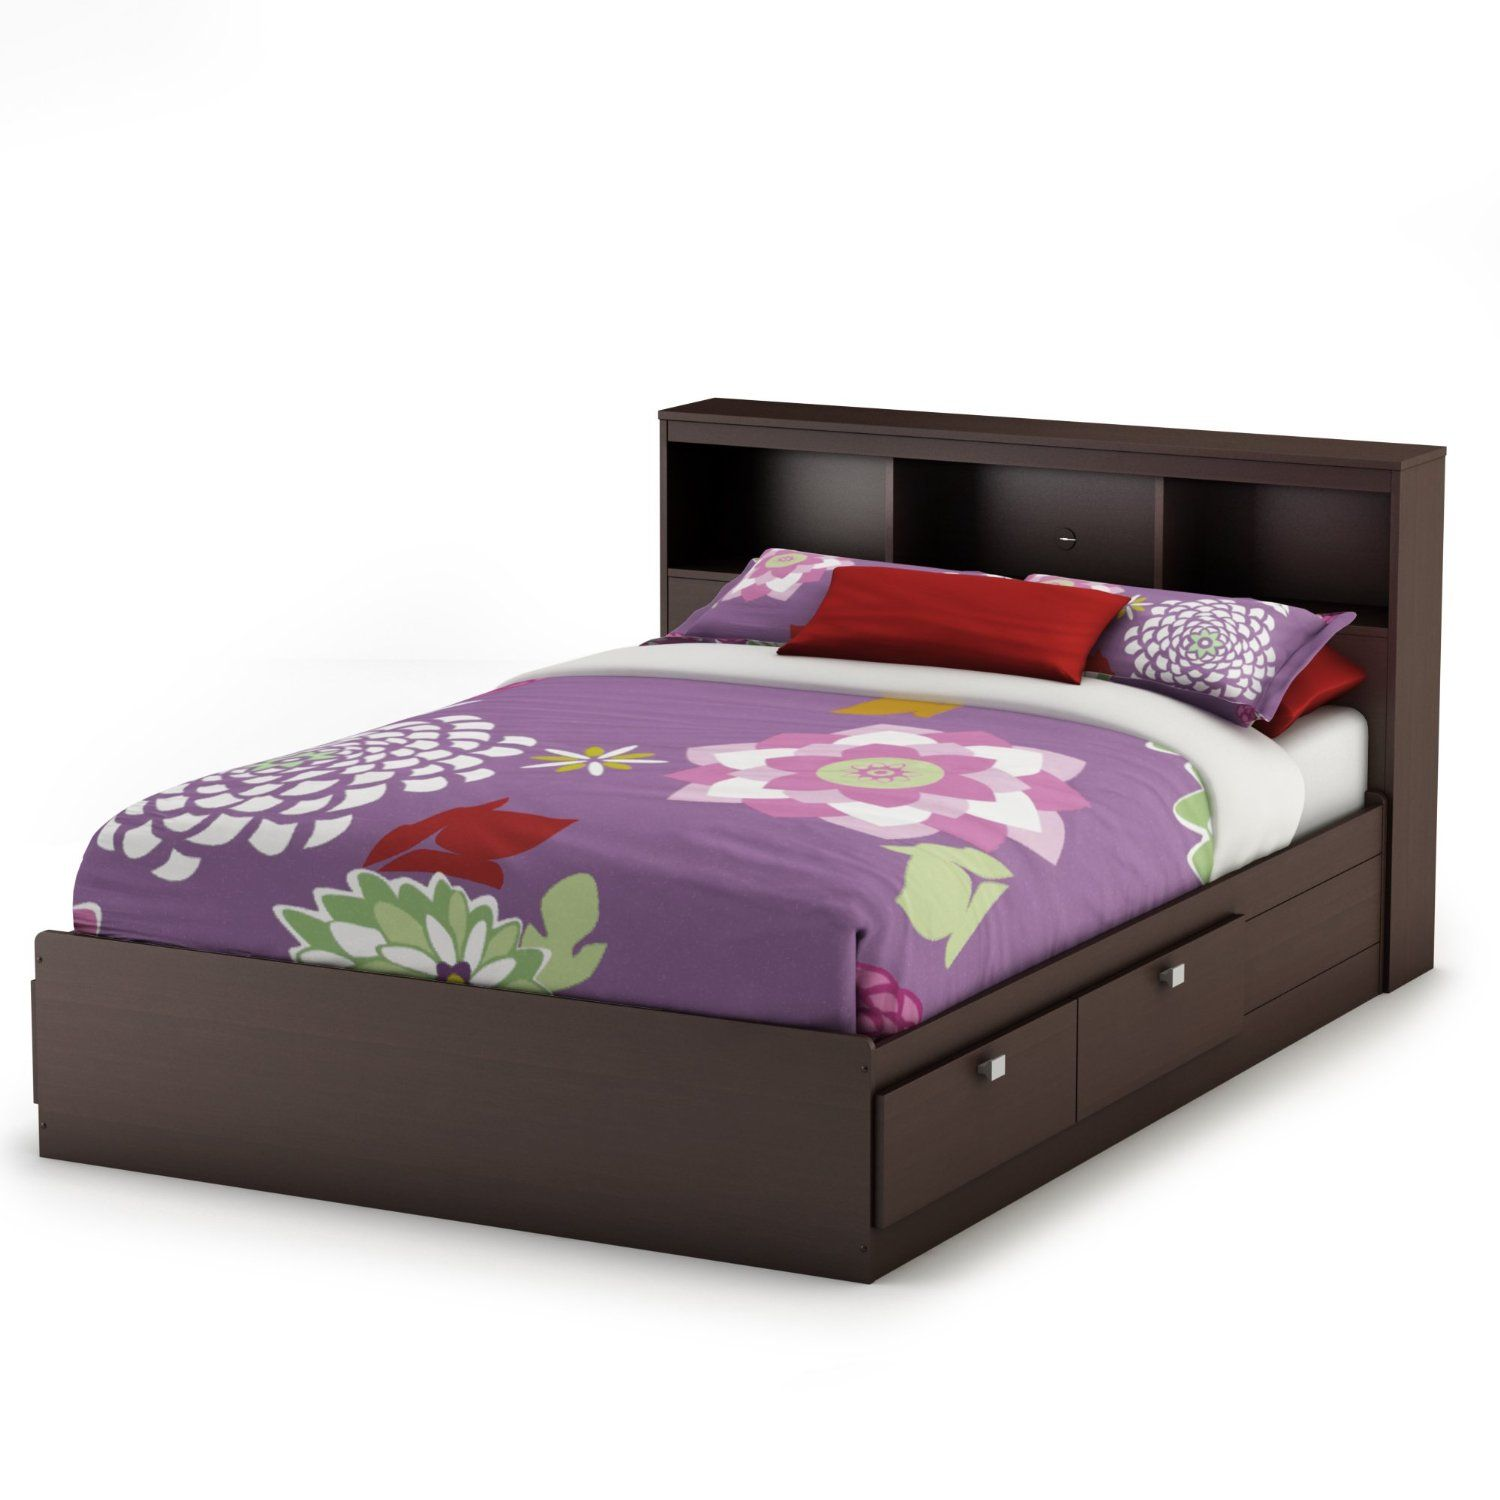 Amazon.com: South Shore Furniture Cakao Collection Full Mates Bed, Chocolate: Furniture & Decor